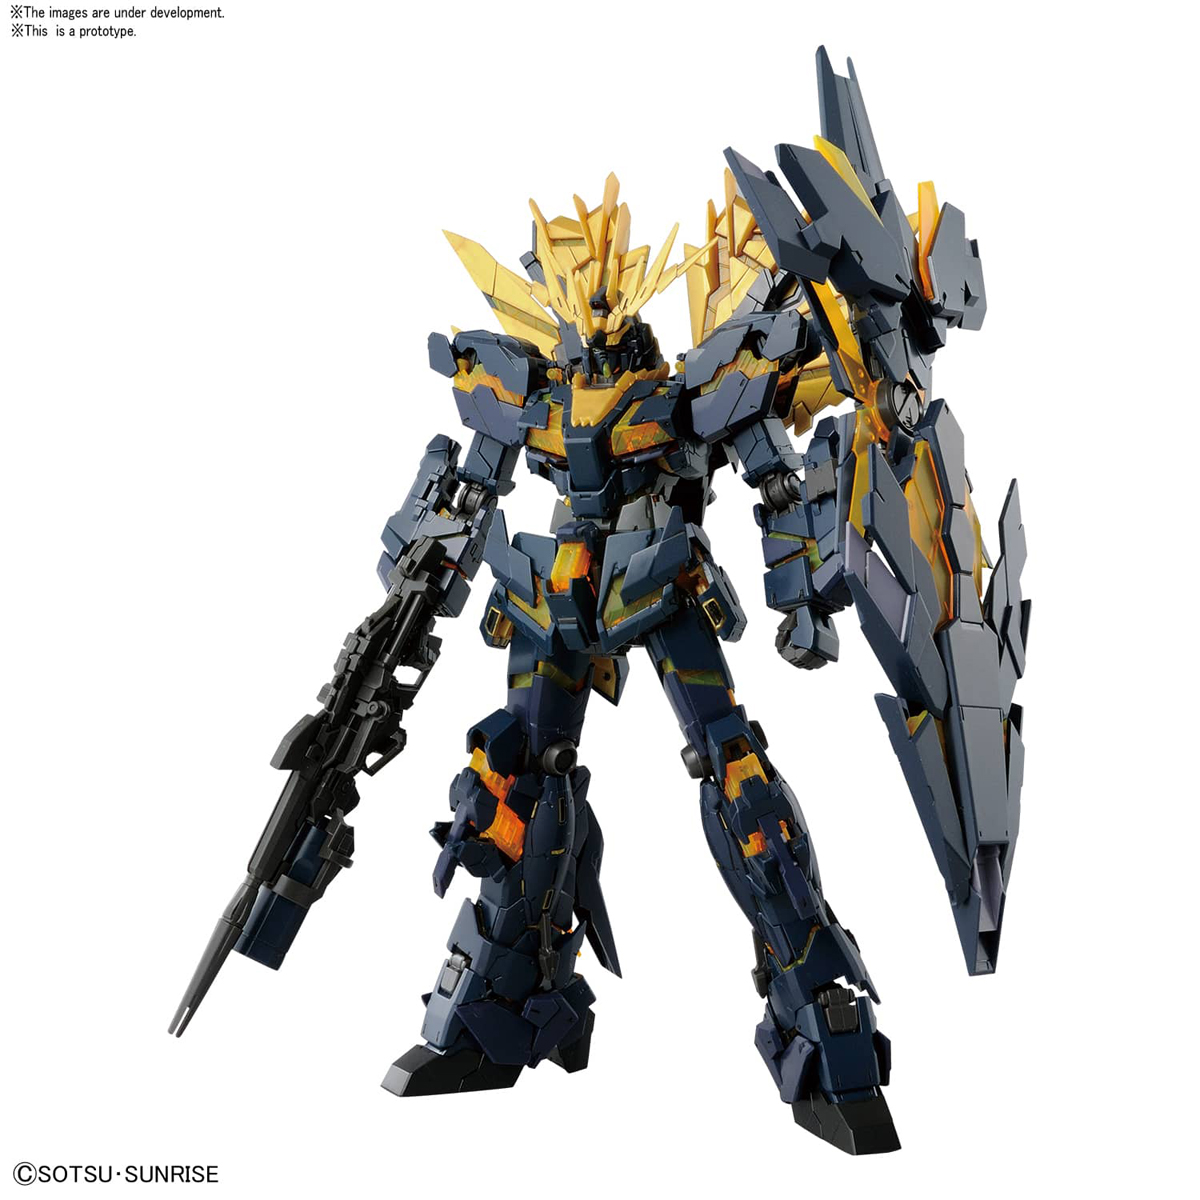 Unicorn Gundam 2 Banshee Gundam Unicorn Model Kit RG 1/144 4549660210603